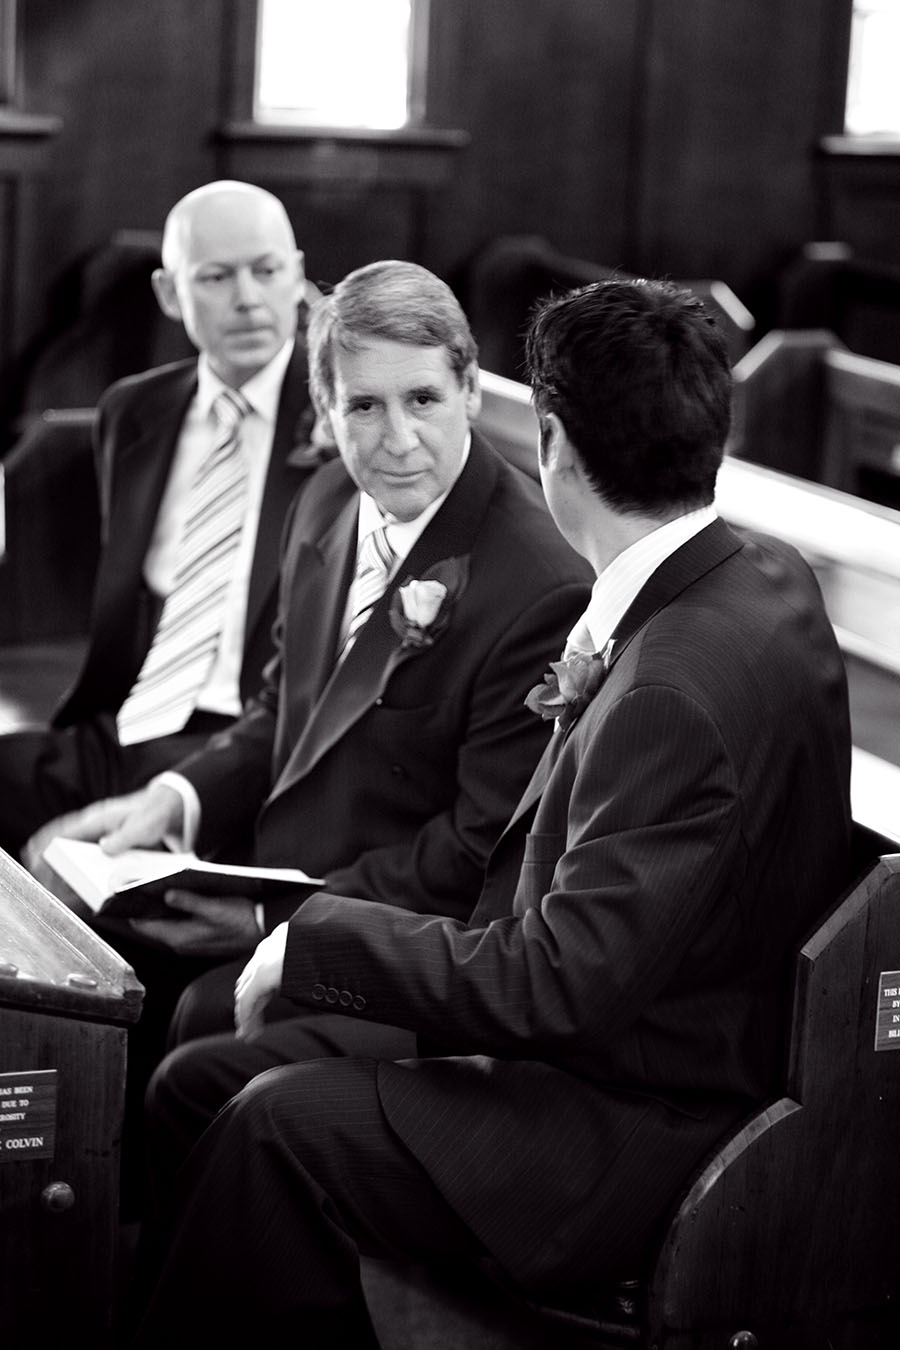 Best man looking directly at camera - Chris Gentle wedding photography. Brisbane australia.